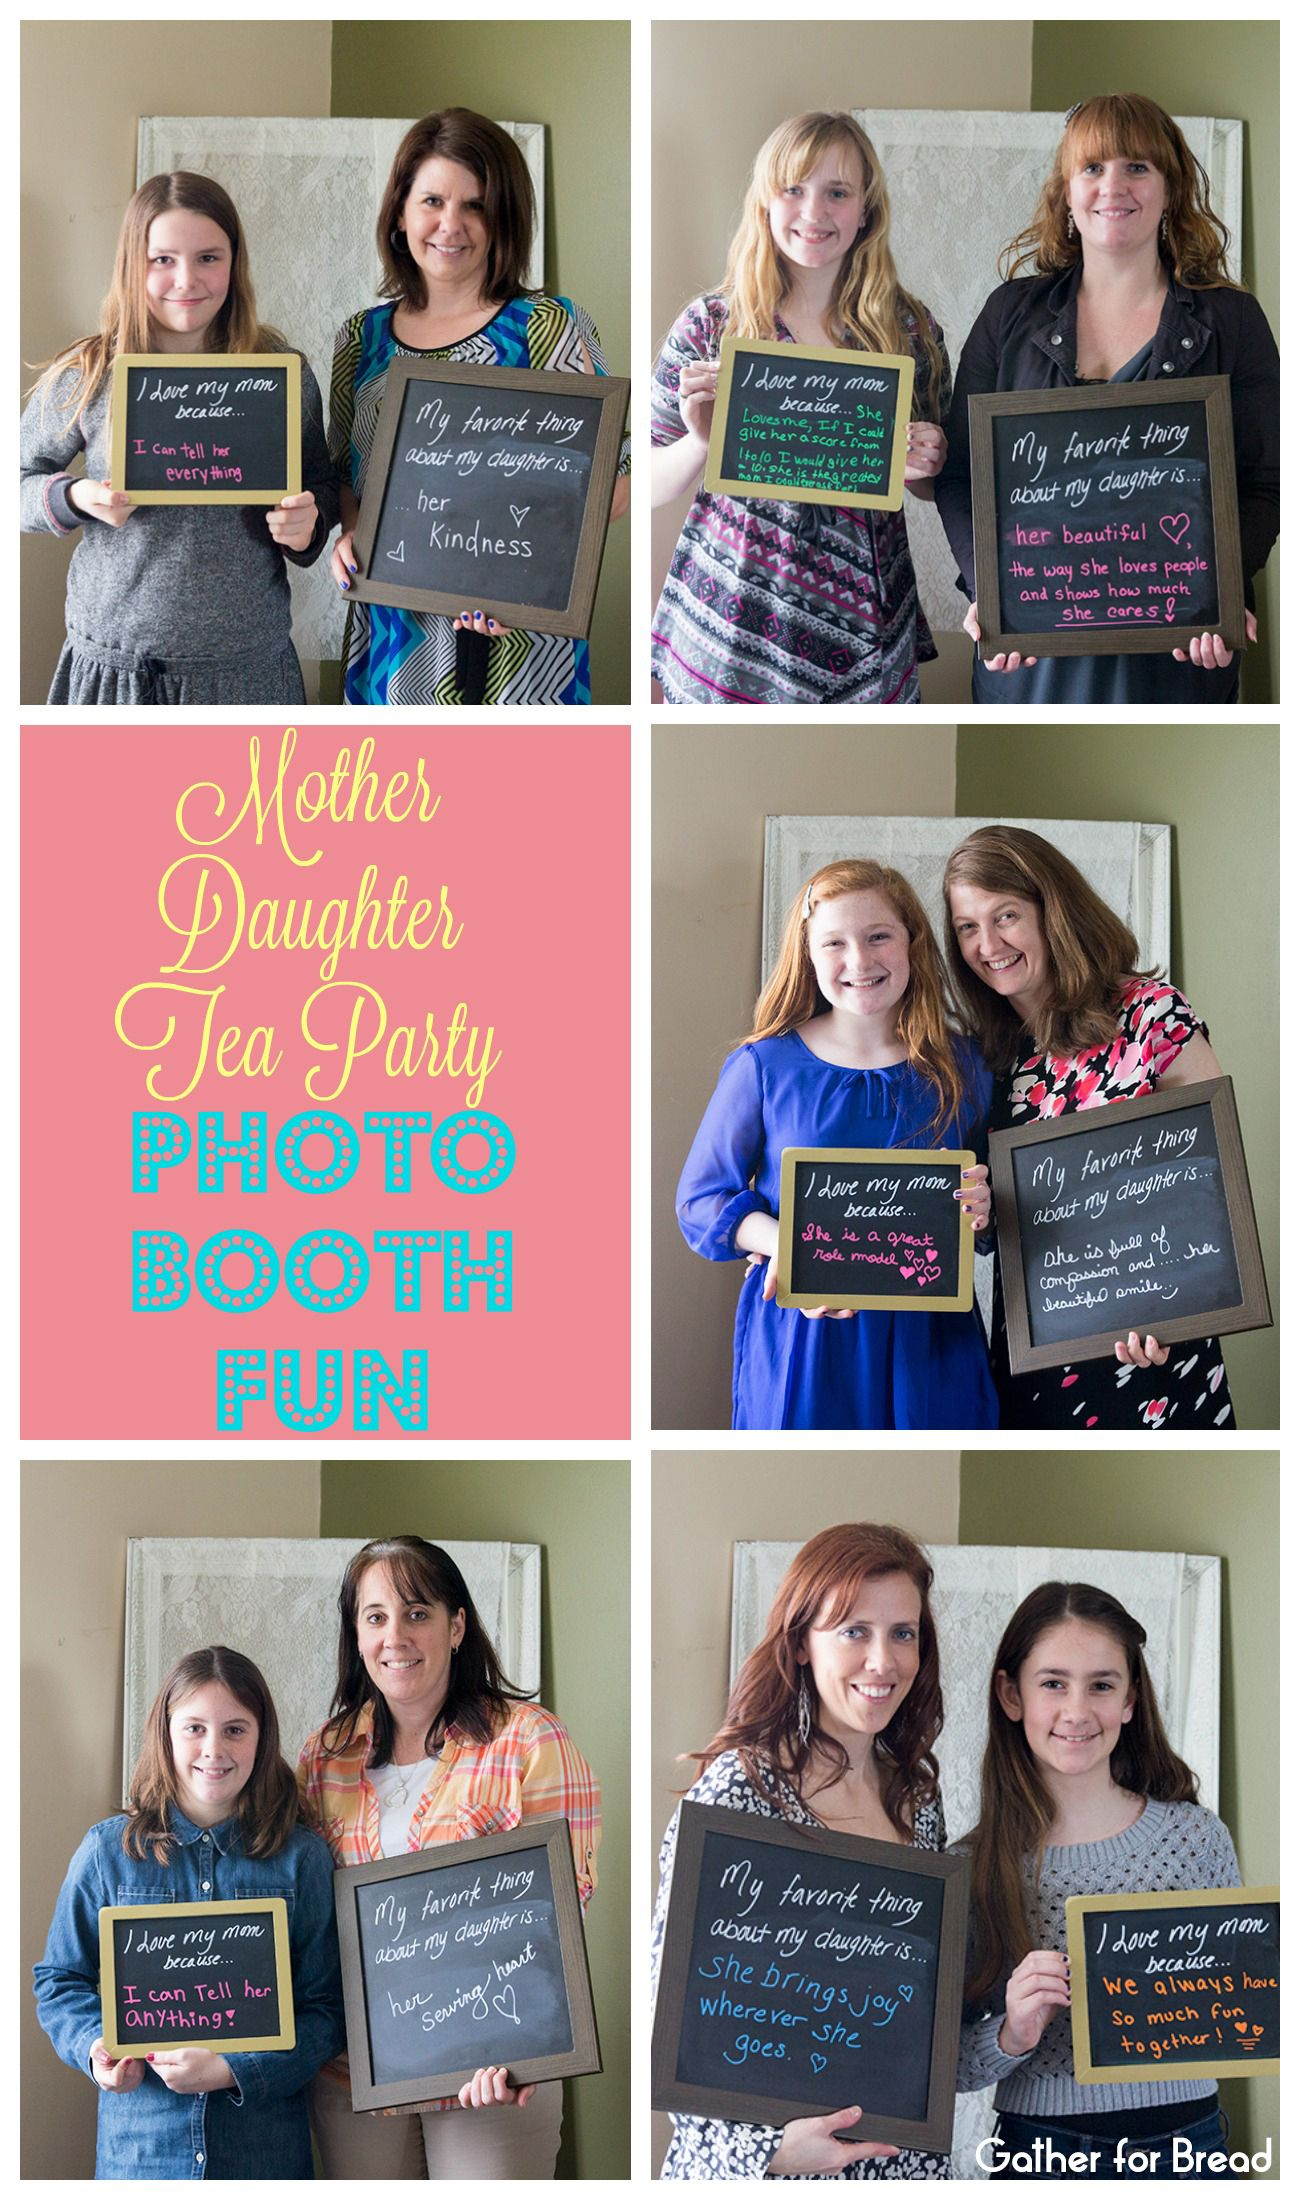 Mother Daughter Tea Party Photo Booth Fun Collage with Watermark ...